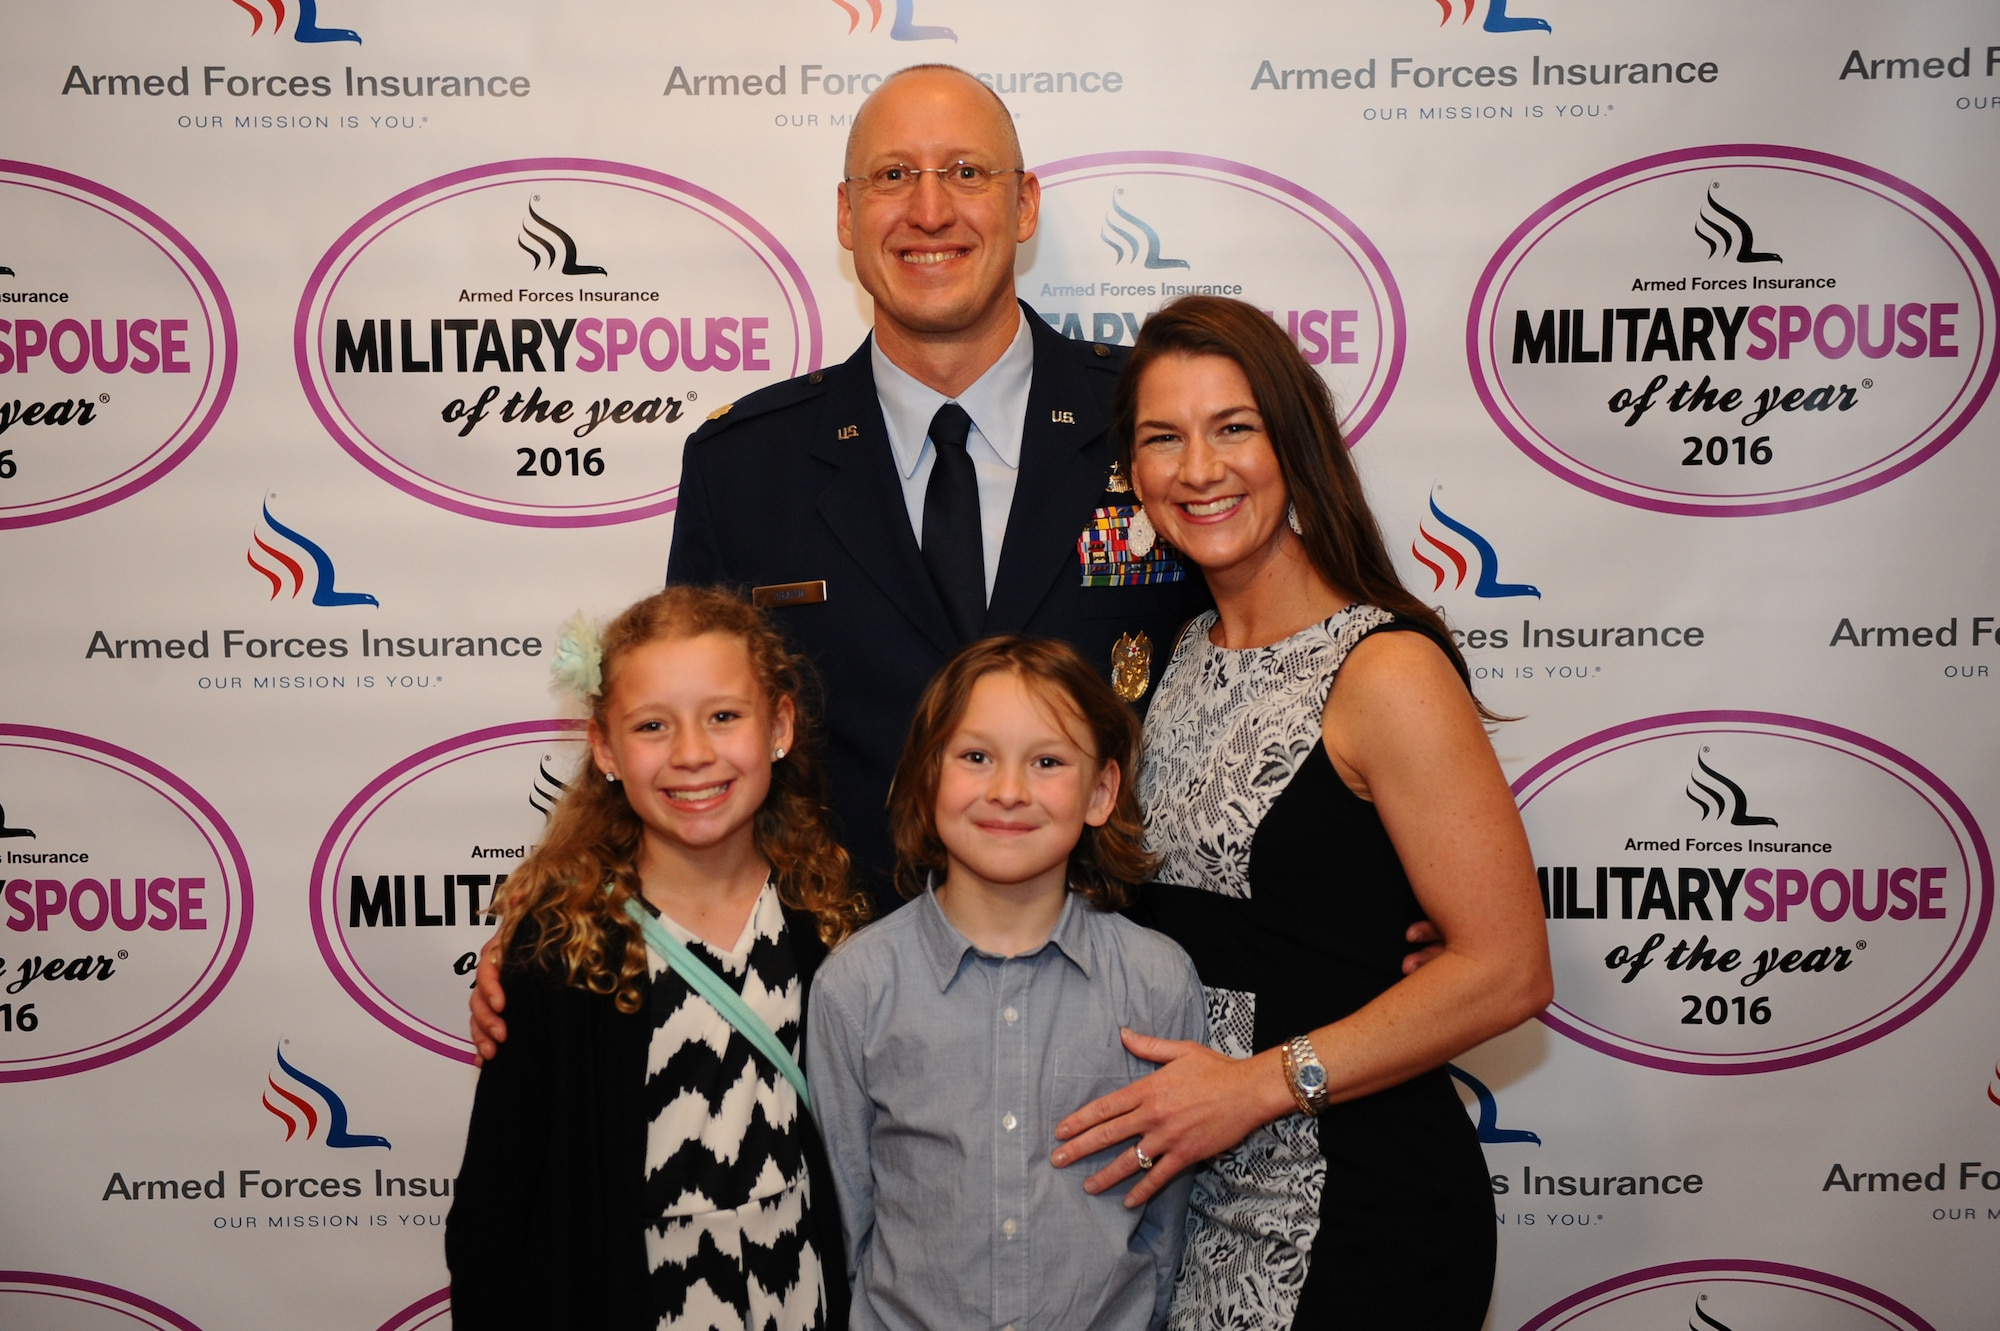 Maj. Robert Aikman, wife Michelle, and children Cole and Annika, attended the Military Spouse of the Year award luncheon May 5, 2016, at Fort Myer in Arlington, Va. During the luncheon, Michelle was recognized as the Air Force's military spouse of the year. The Aikmans are stationed at Fairchild Air Force Base, Wash. (U.S. Air Force photo/Tech. Sgt. Bryan Franks)